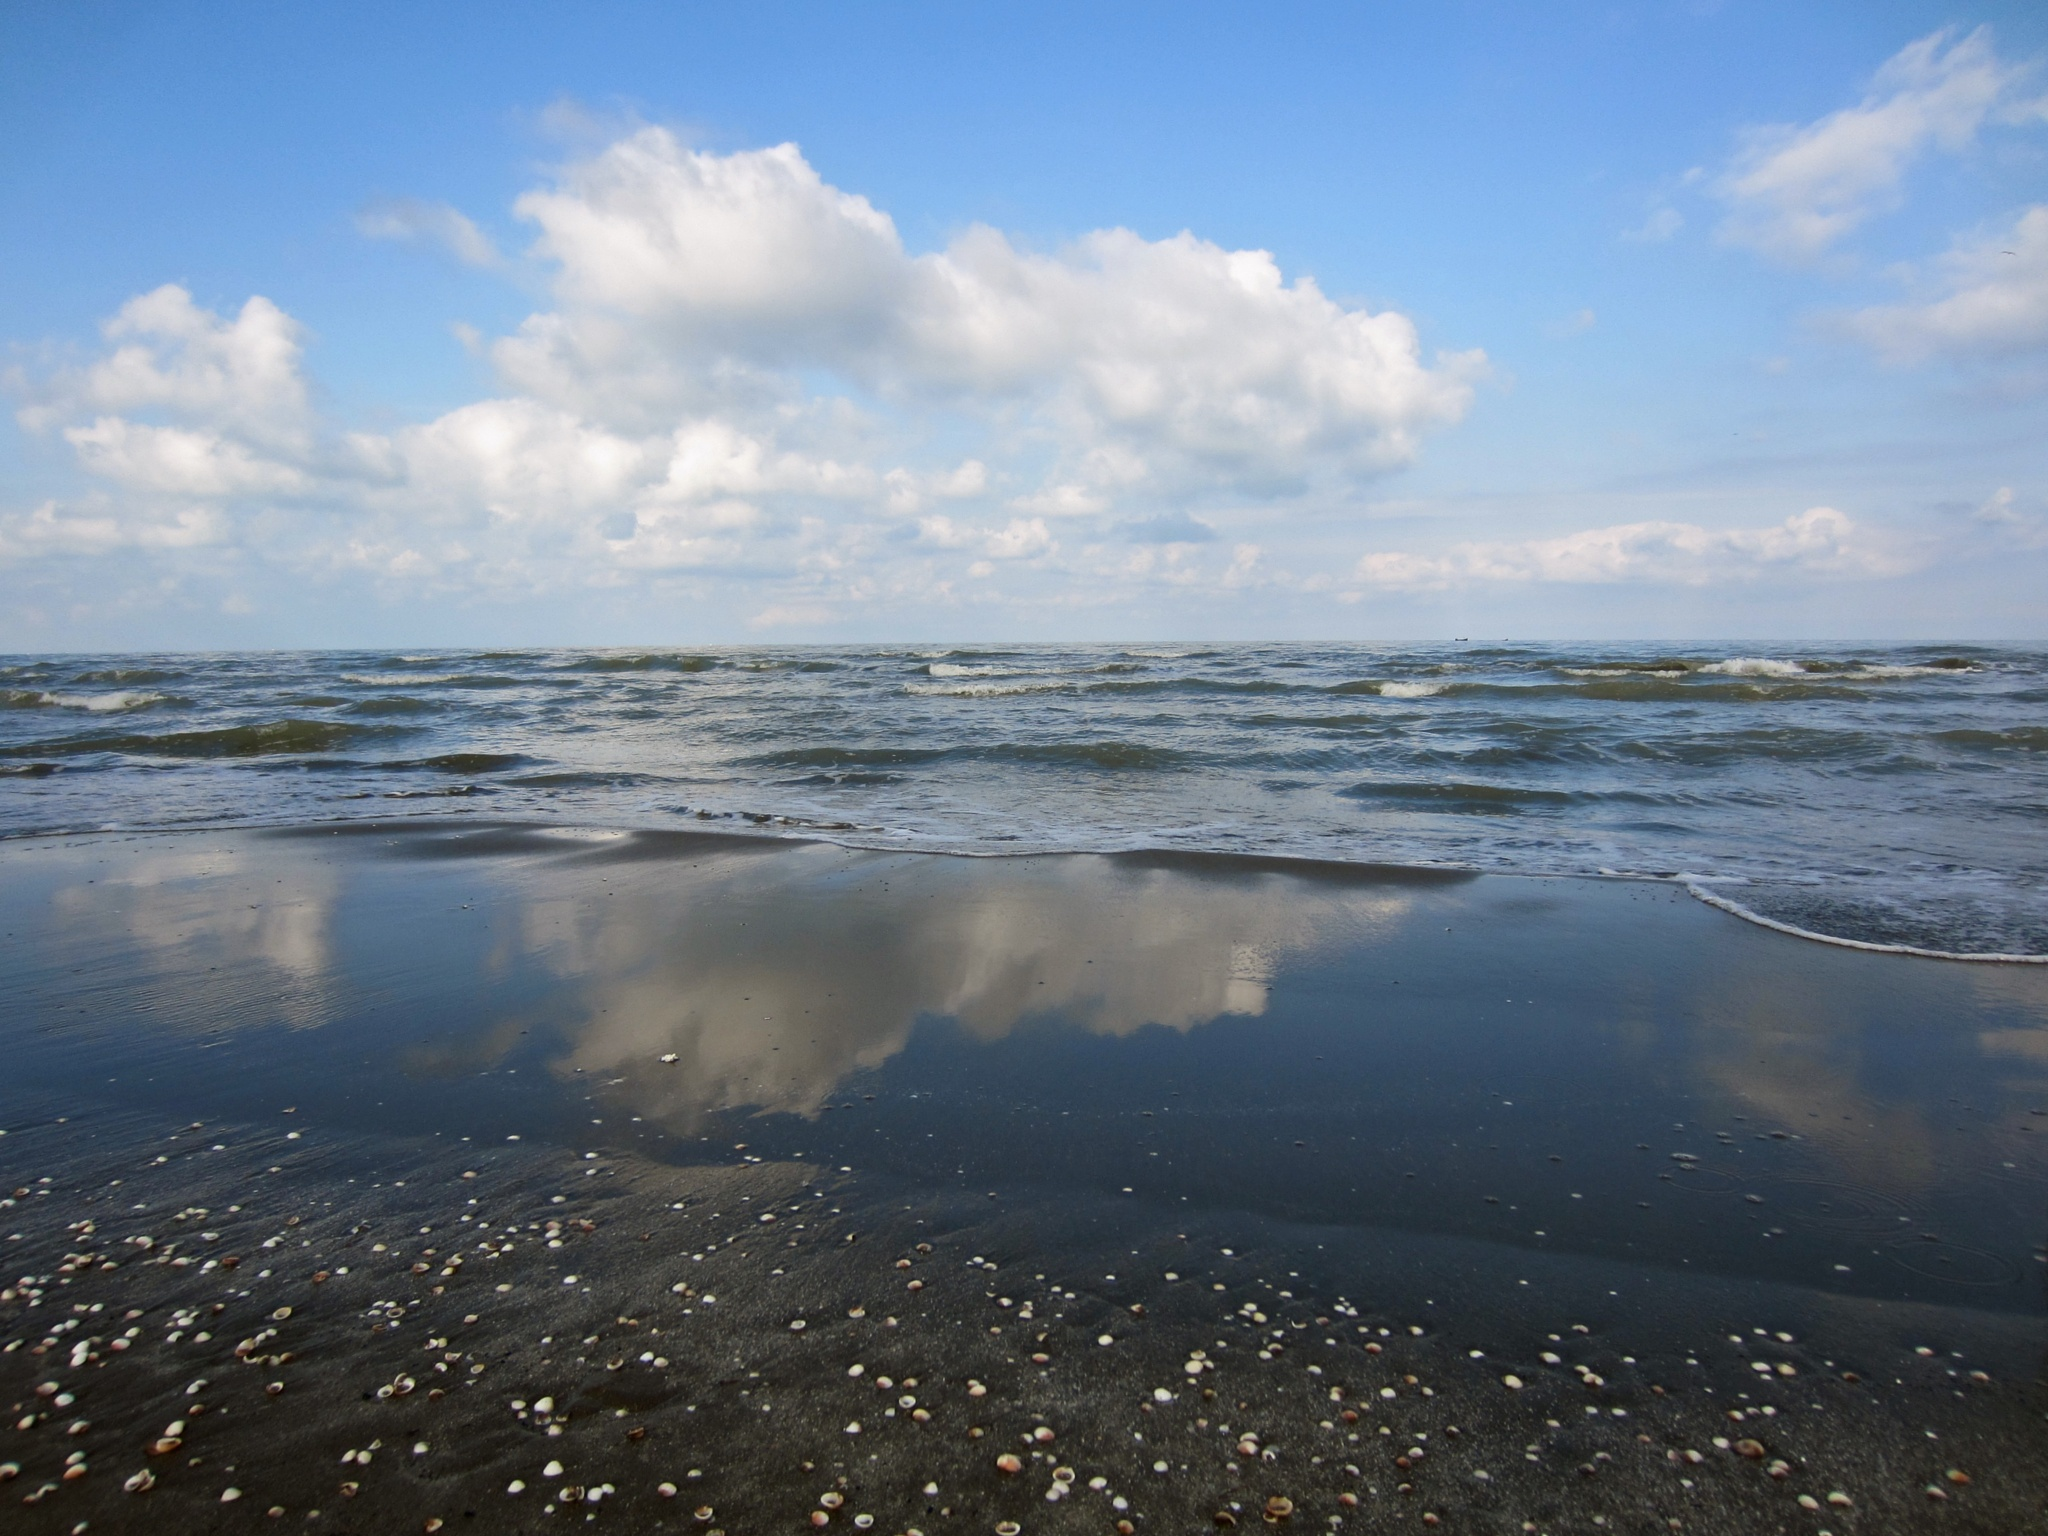 Caspian Sea today by kate1480